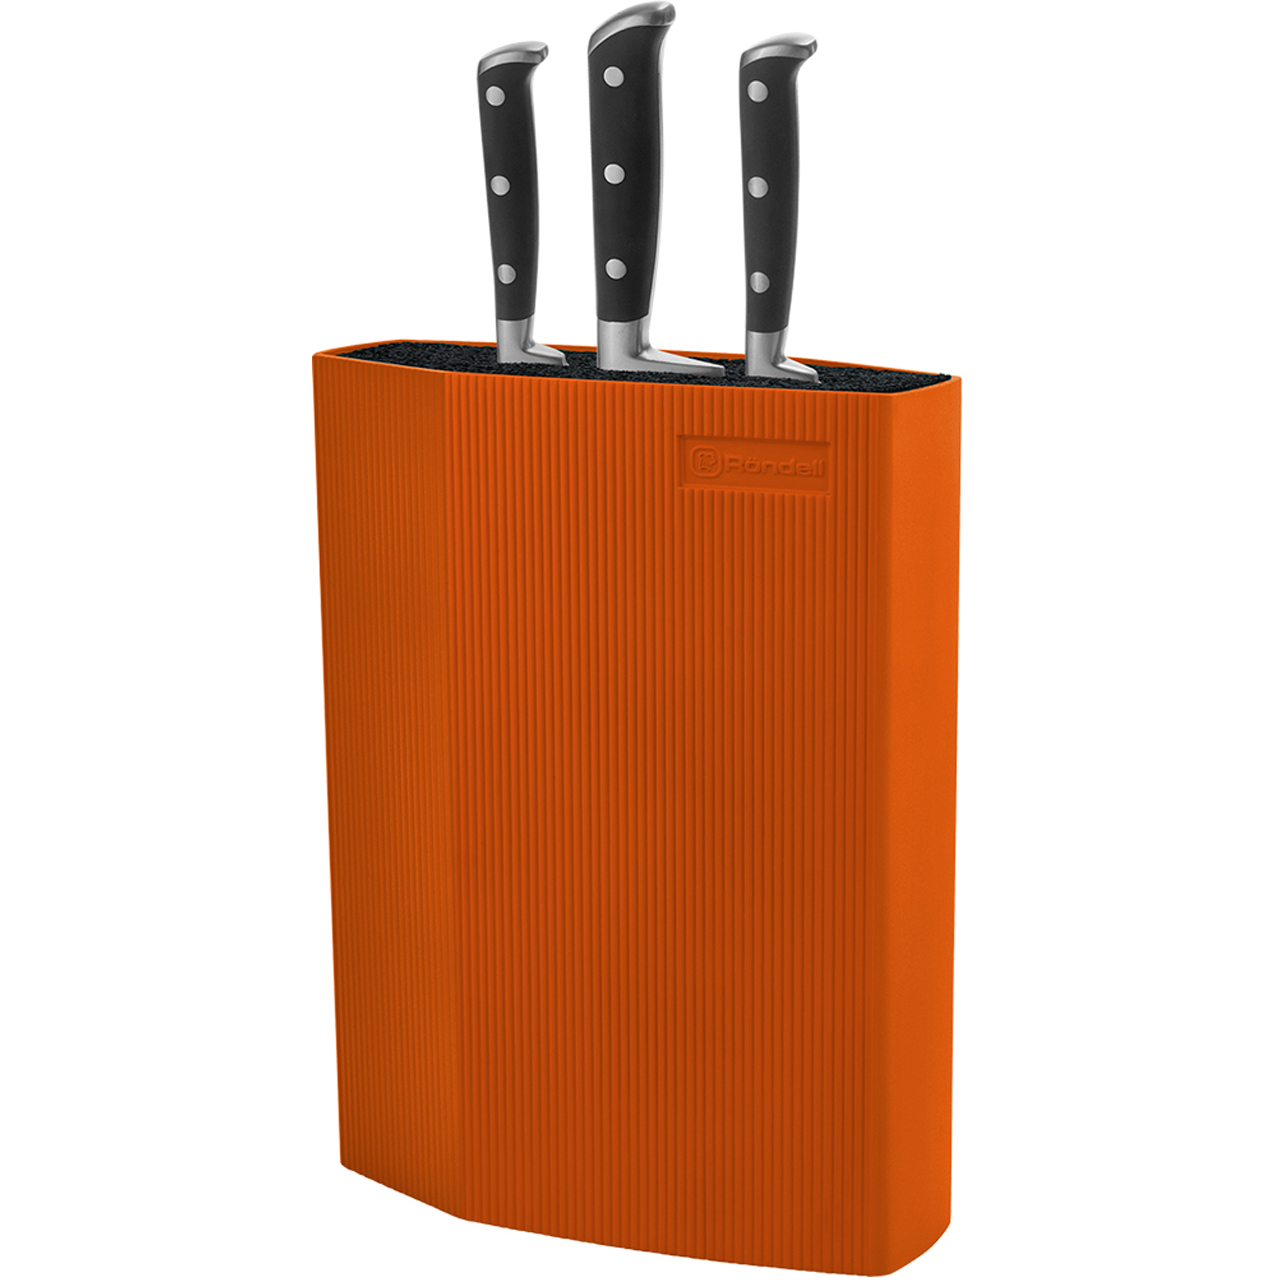 Stand for knives Rondell Orange RD-470